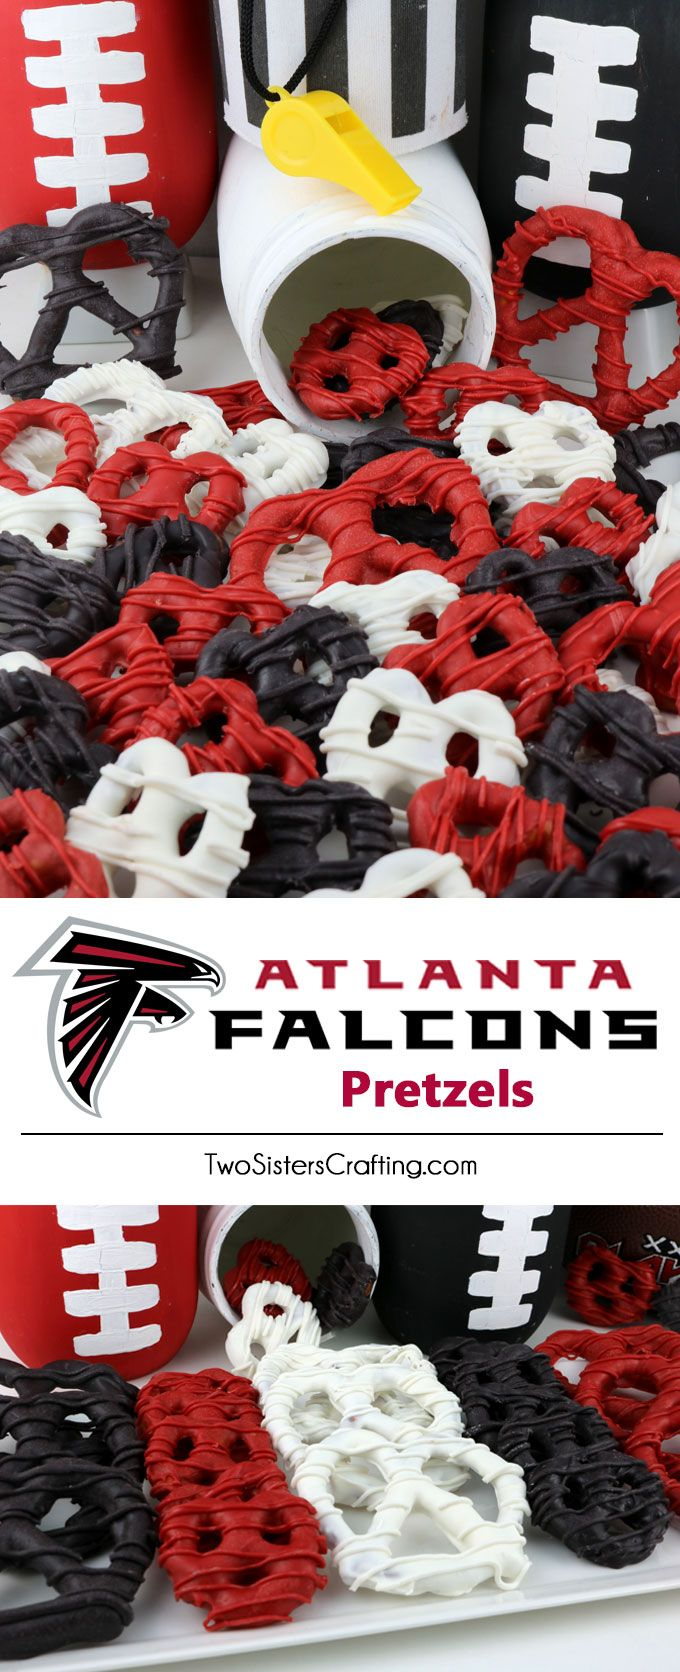 Atlanta Falcons Pretzels Yummy Bites Of Sweet And Salty Football Game Day Goodness That Super Bowl Food Superbowl Desserts Healthy Superbowl Snacks